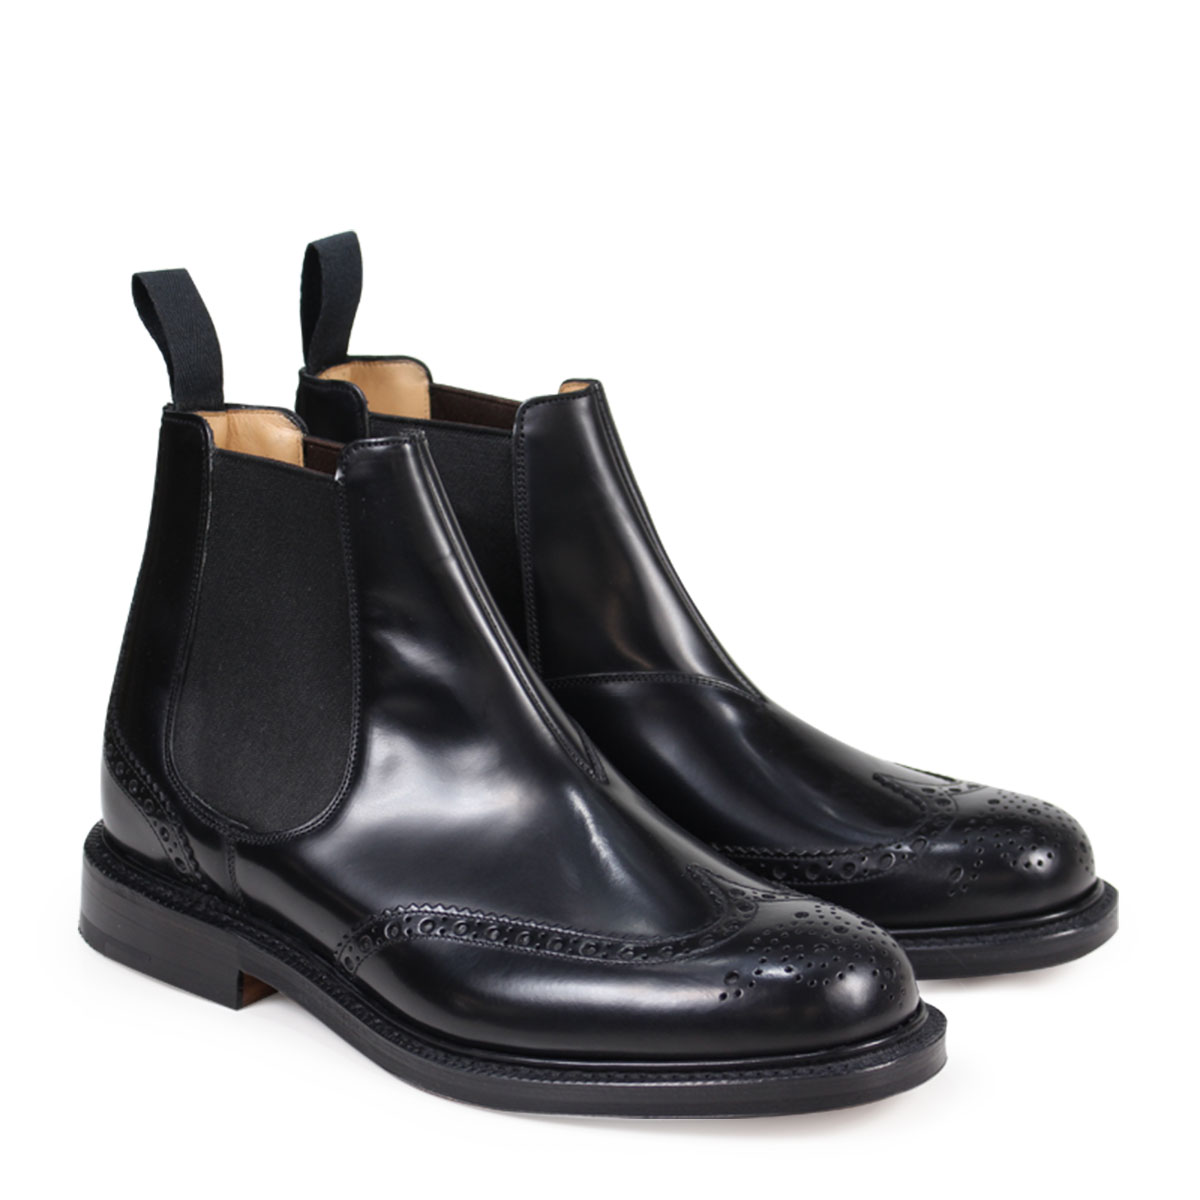 60635b66fd08 The welt shoes of the church are made after a process of 250 by the  Goodyear welt manufacturing method.